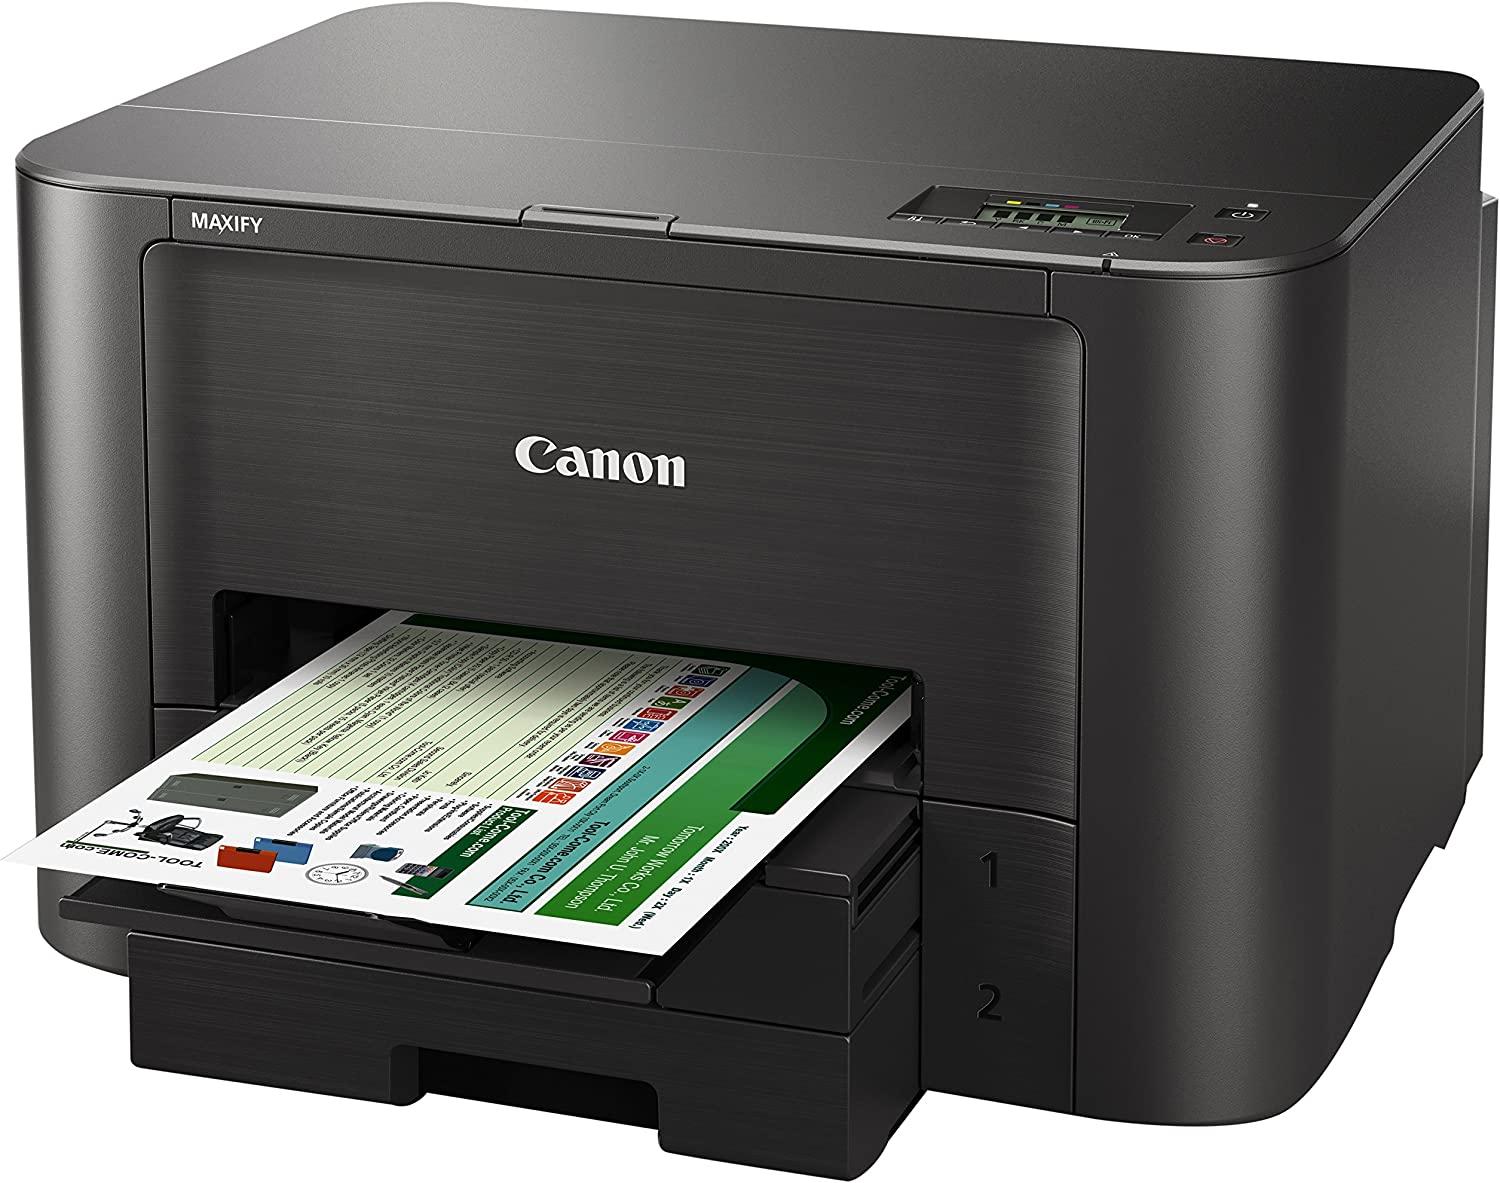 Canon Maxify Ib4020 Wireless Office Inkjet Printer Amazon Ca Electronics